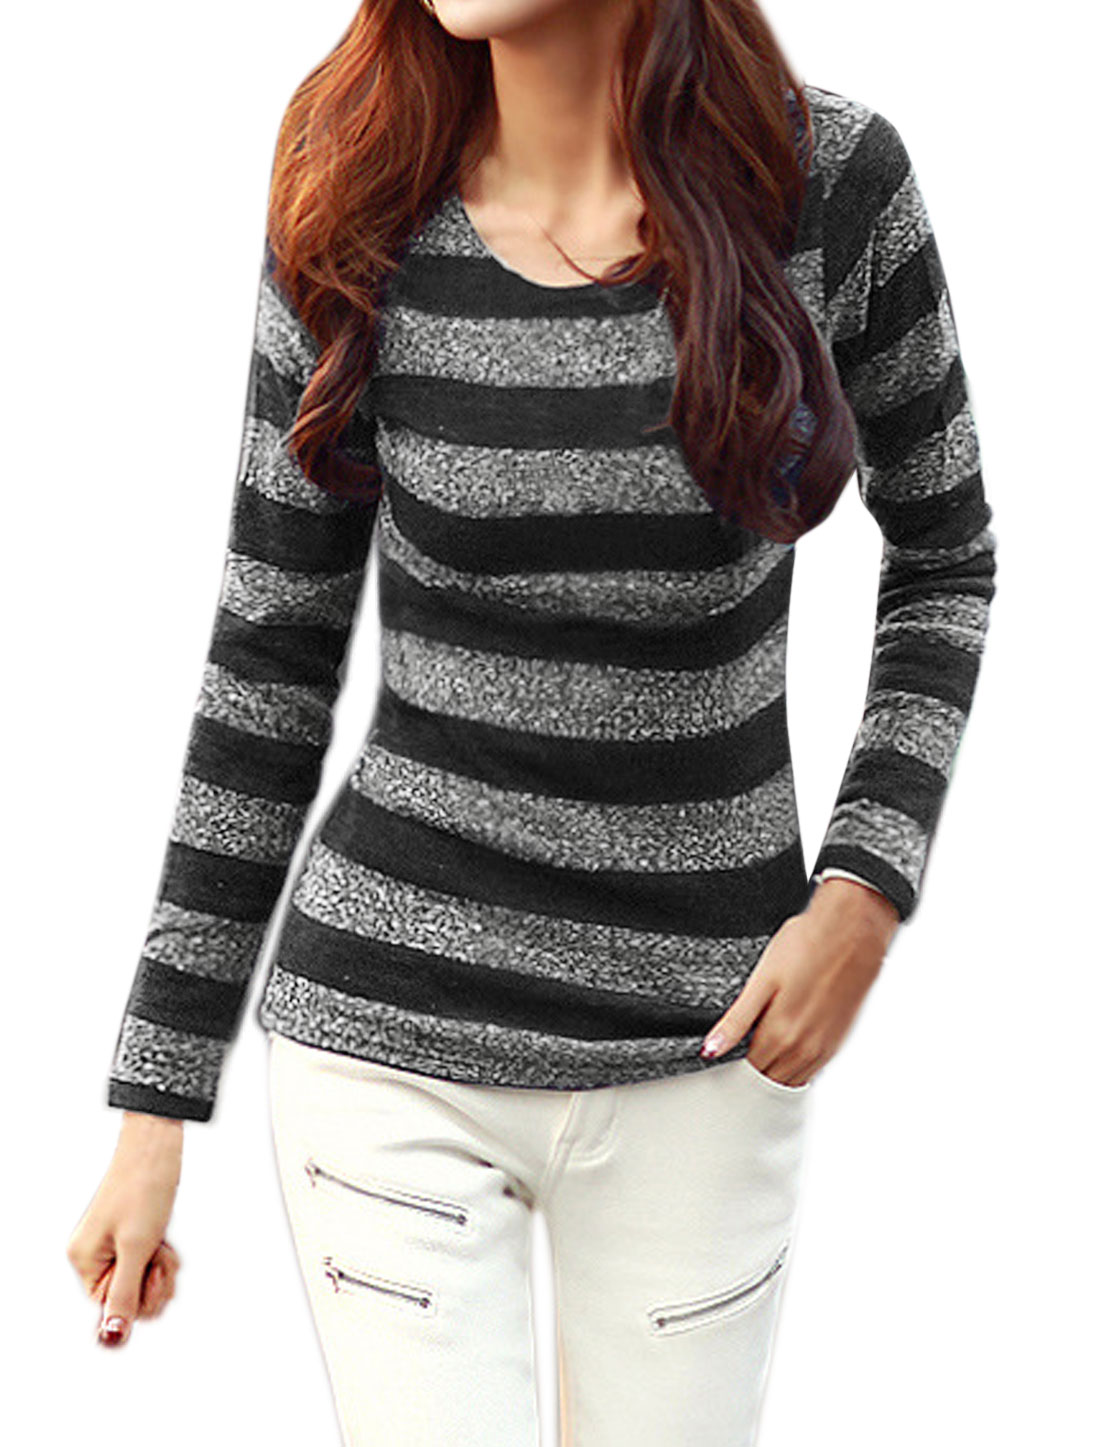 Women Round Neck Stripes Slim Fit Knit Shirt Black XS